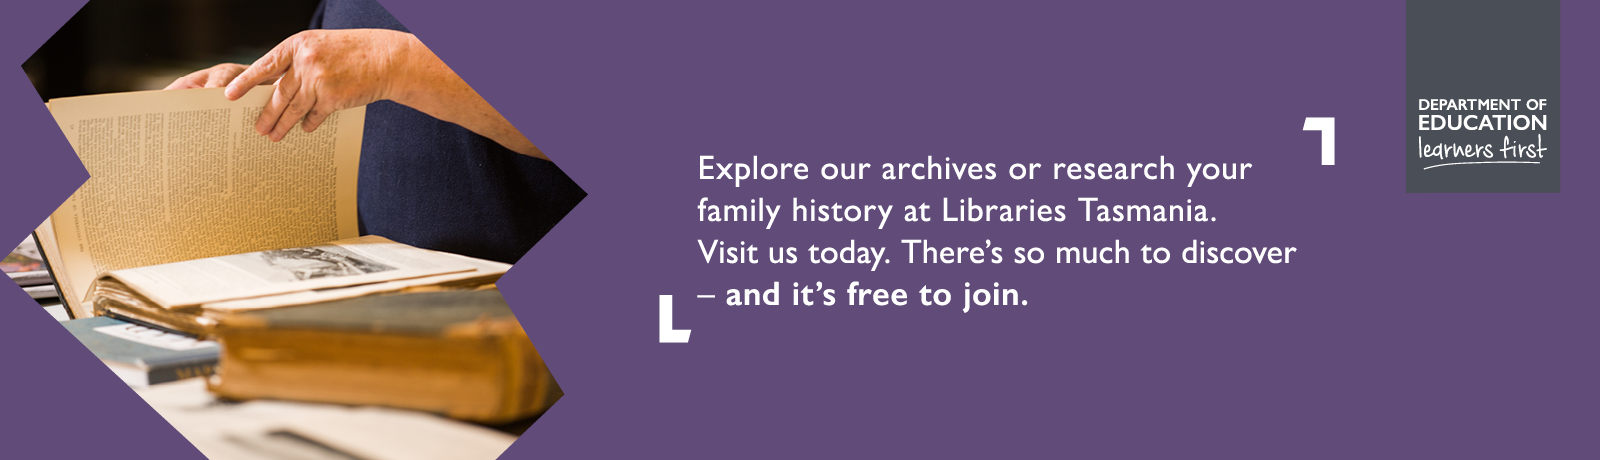 Explore our archives or research your family history at Libraries Tasmania. Visit us today. There's so much to discover - and it's free to join.